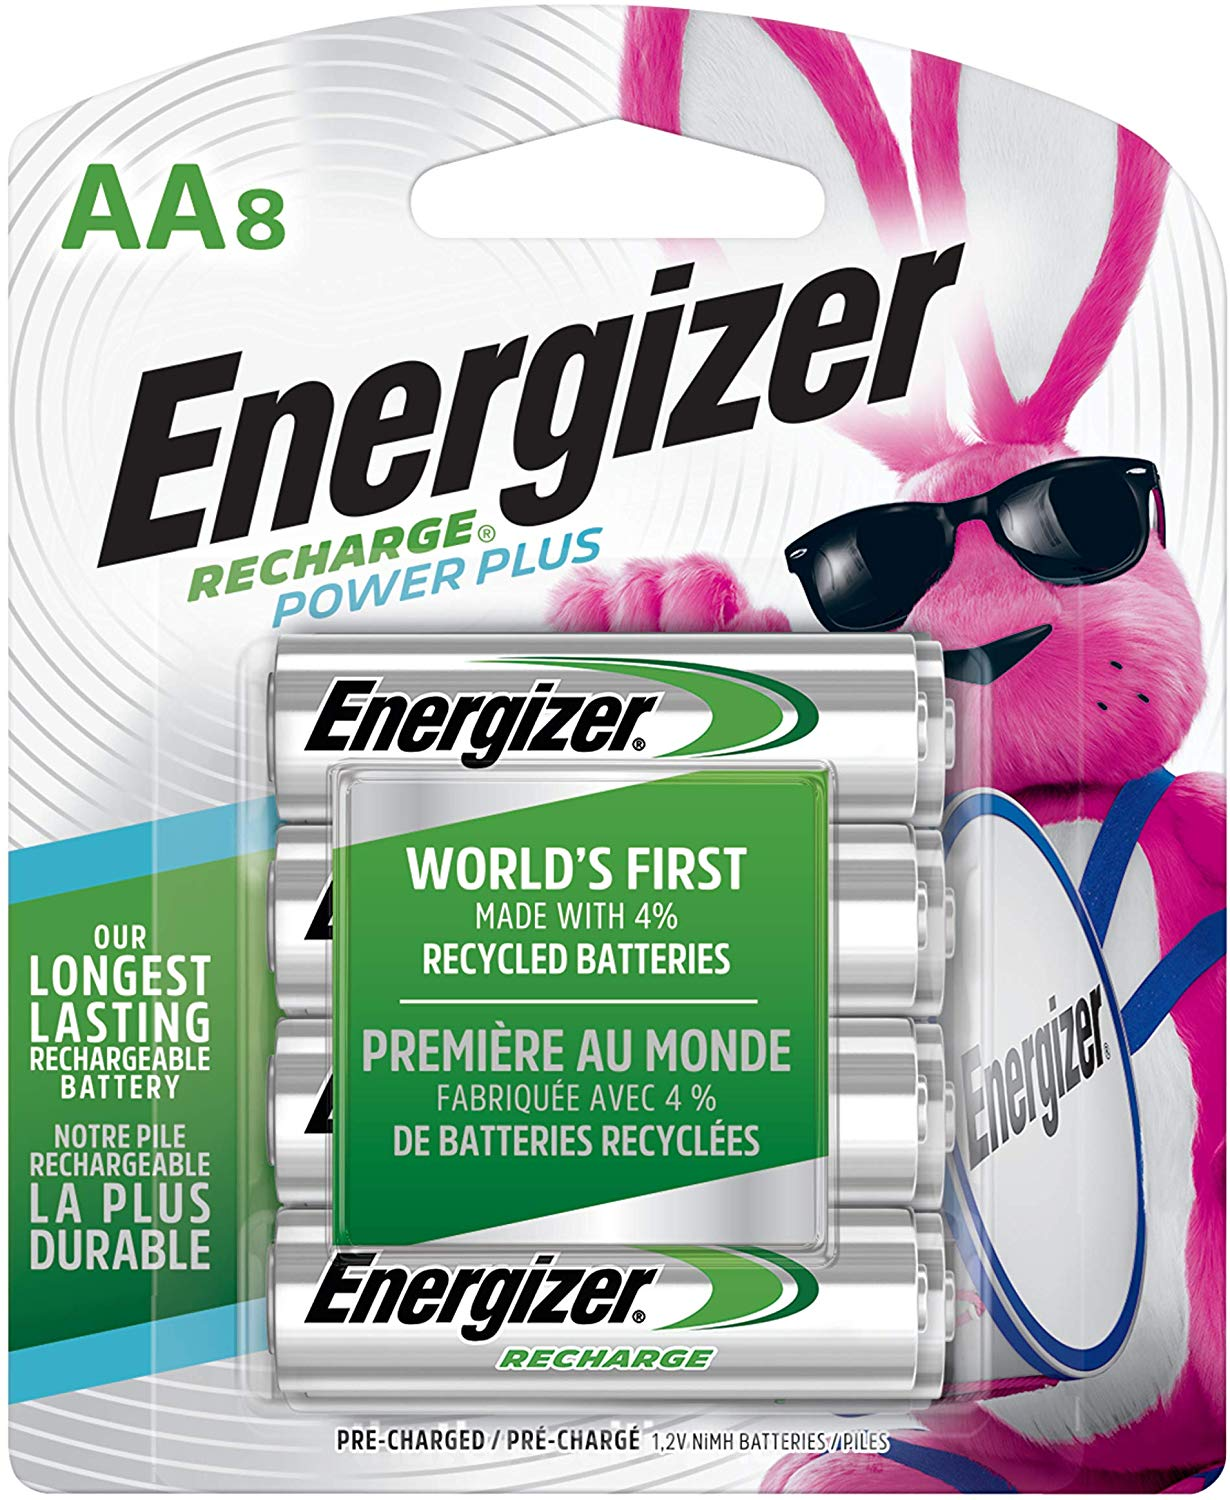 Energizer Rechargeable AA Batteries | Best Rechargeable AA Battery